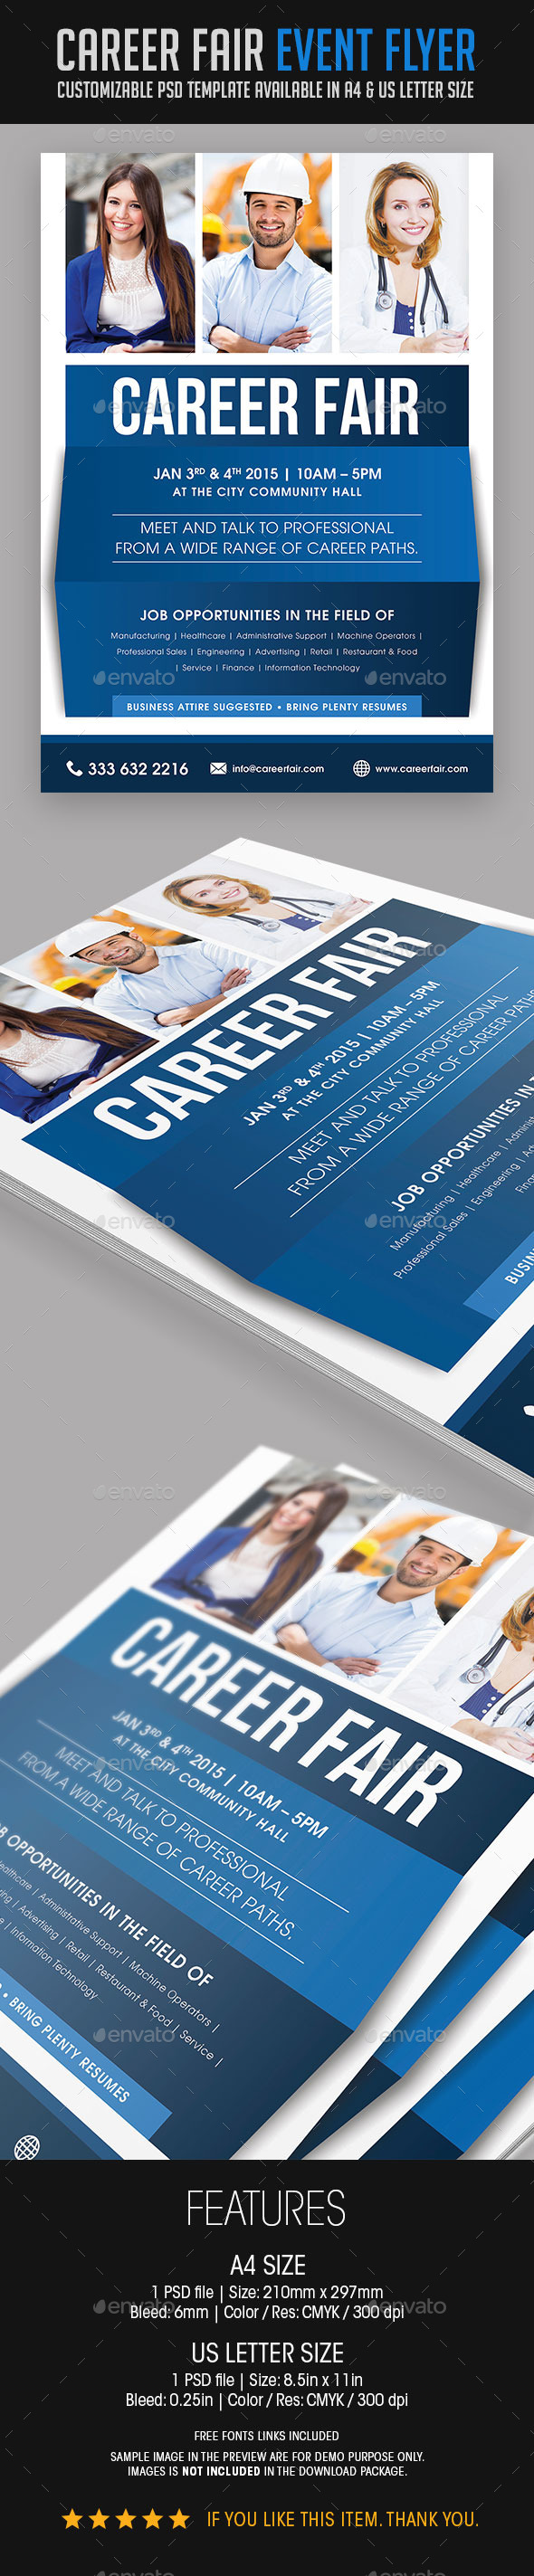 GraphicRiver Career Fair Event Flyer 9409287